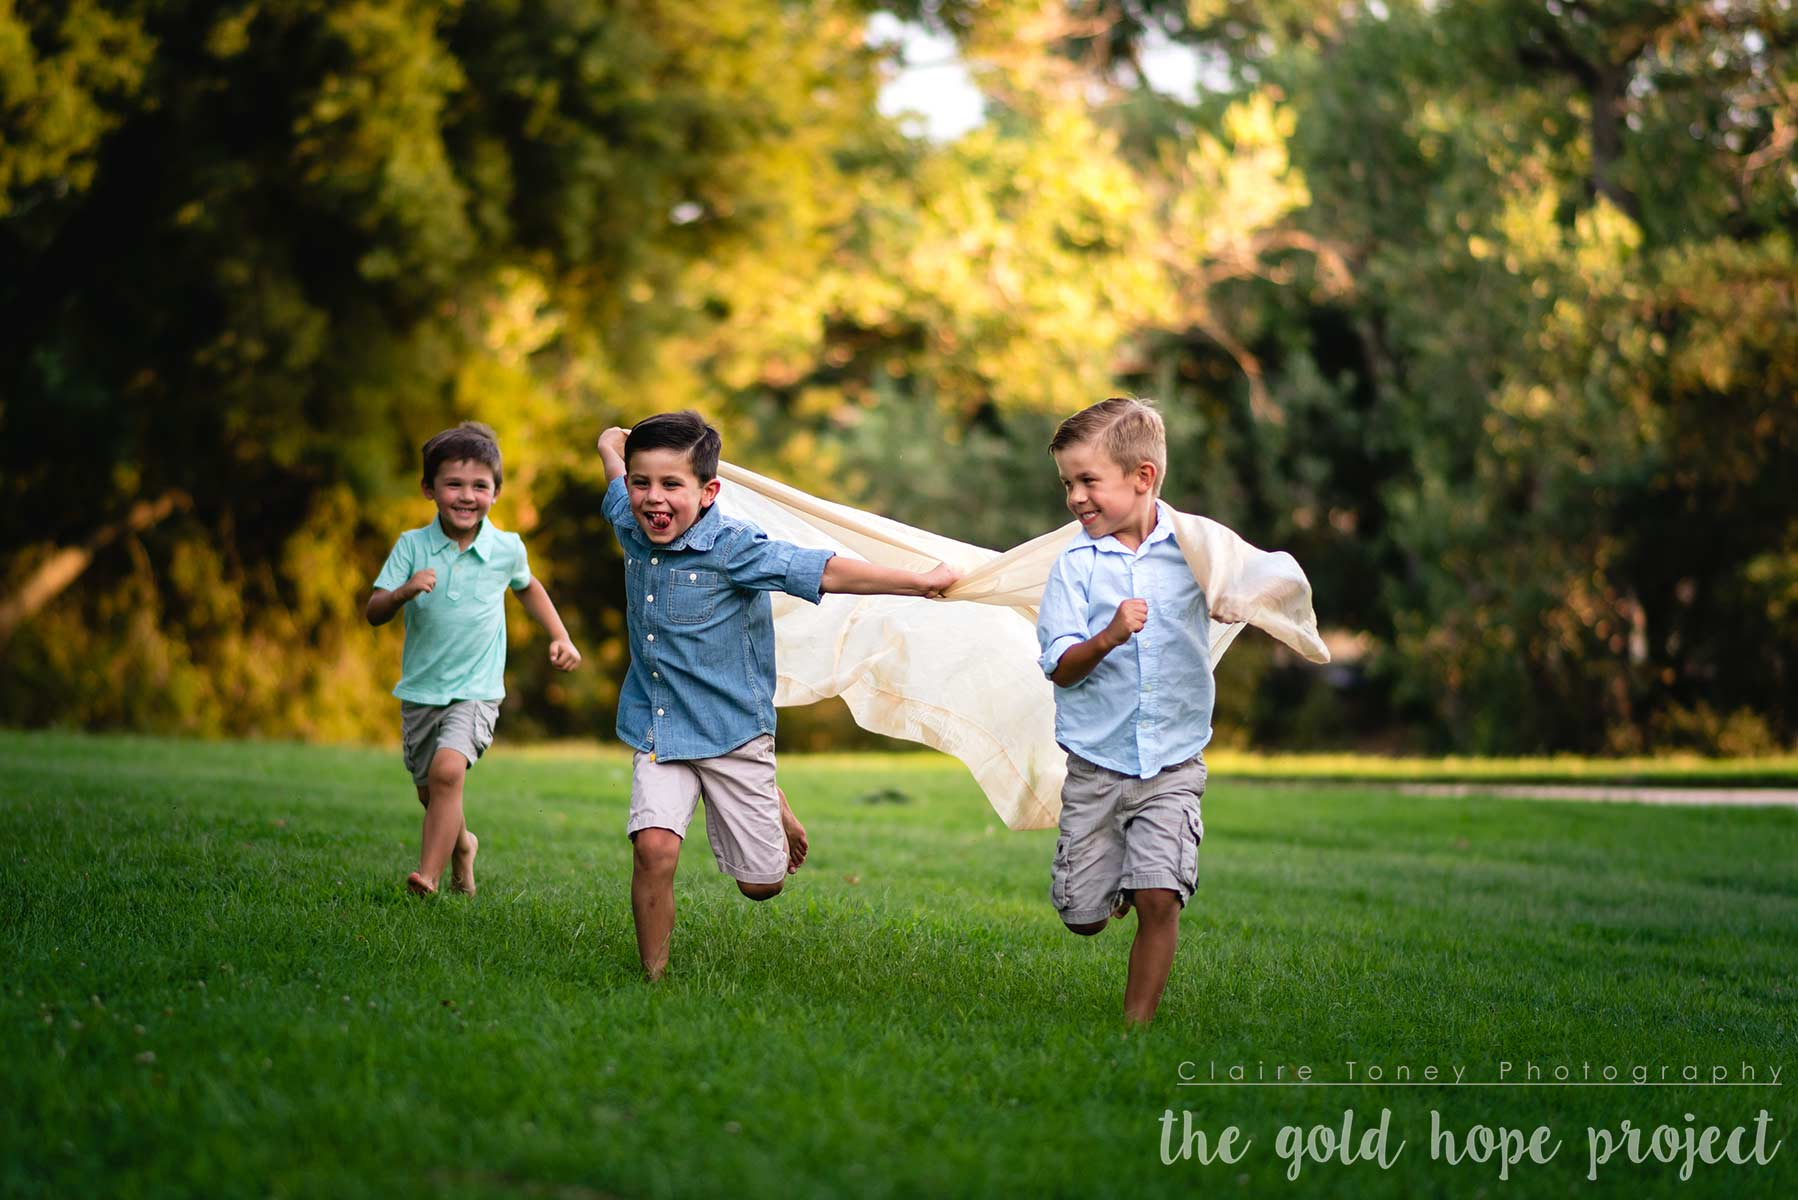 three boys running on a field with two boys holding a cloth behind them